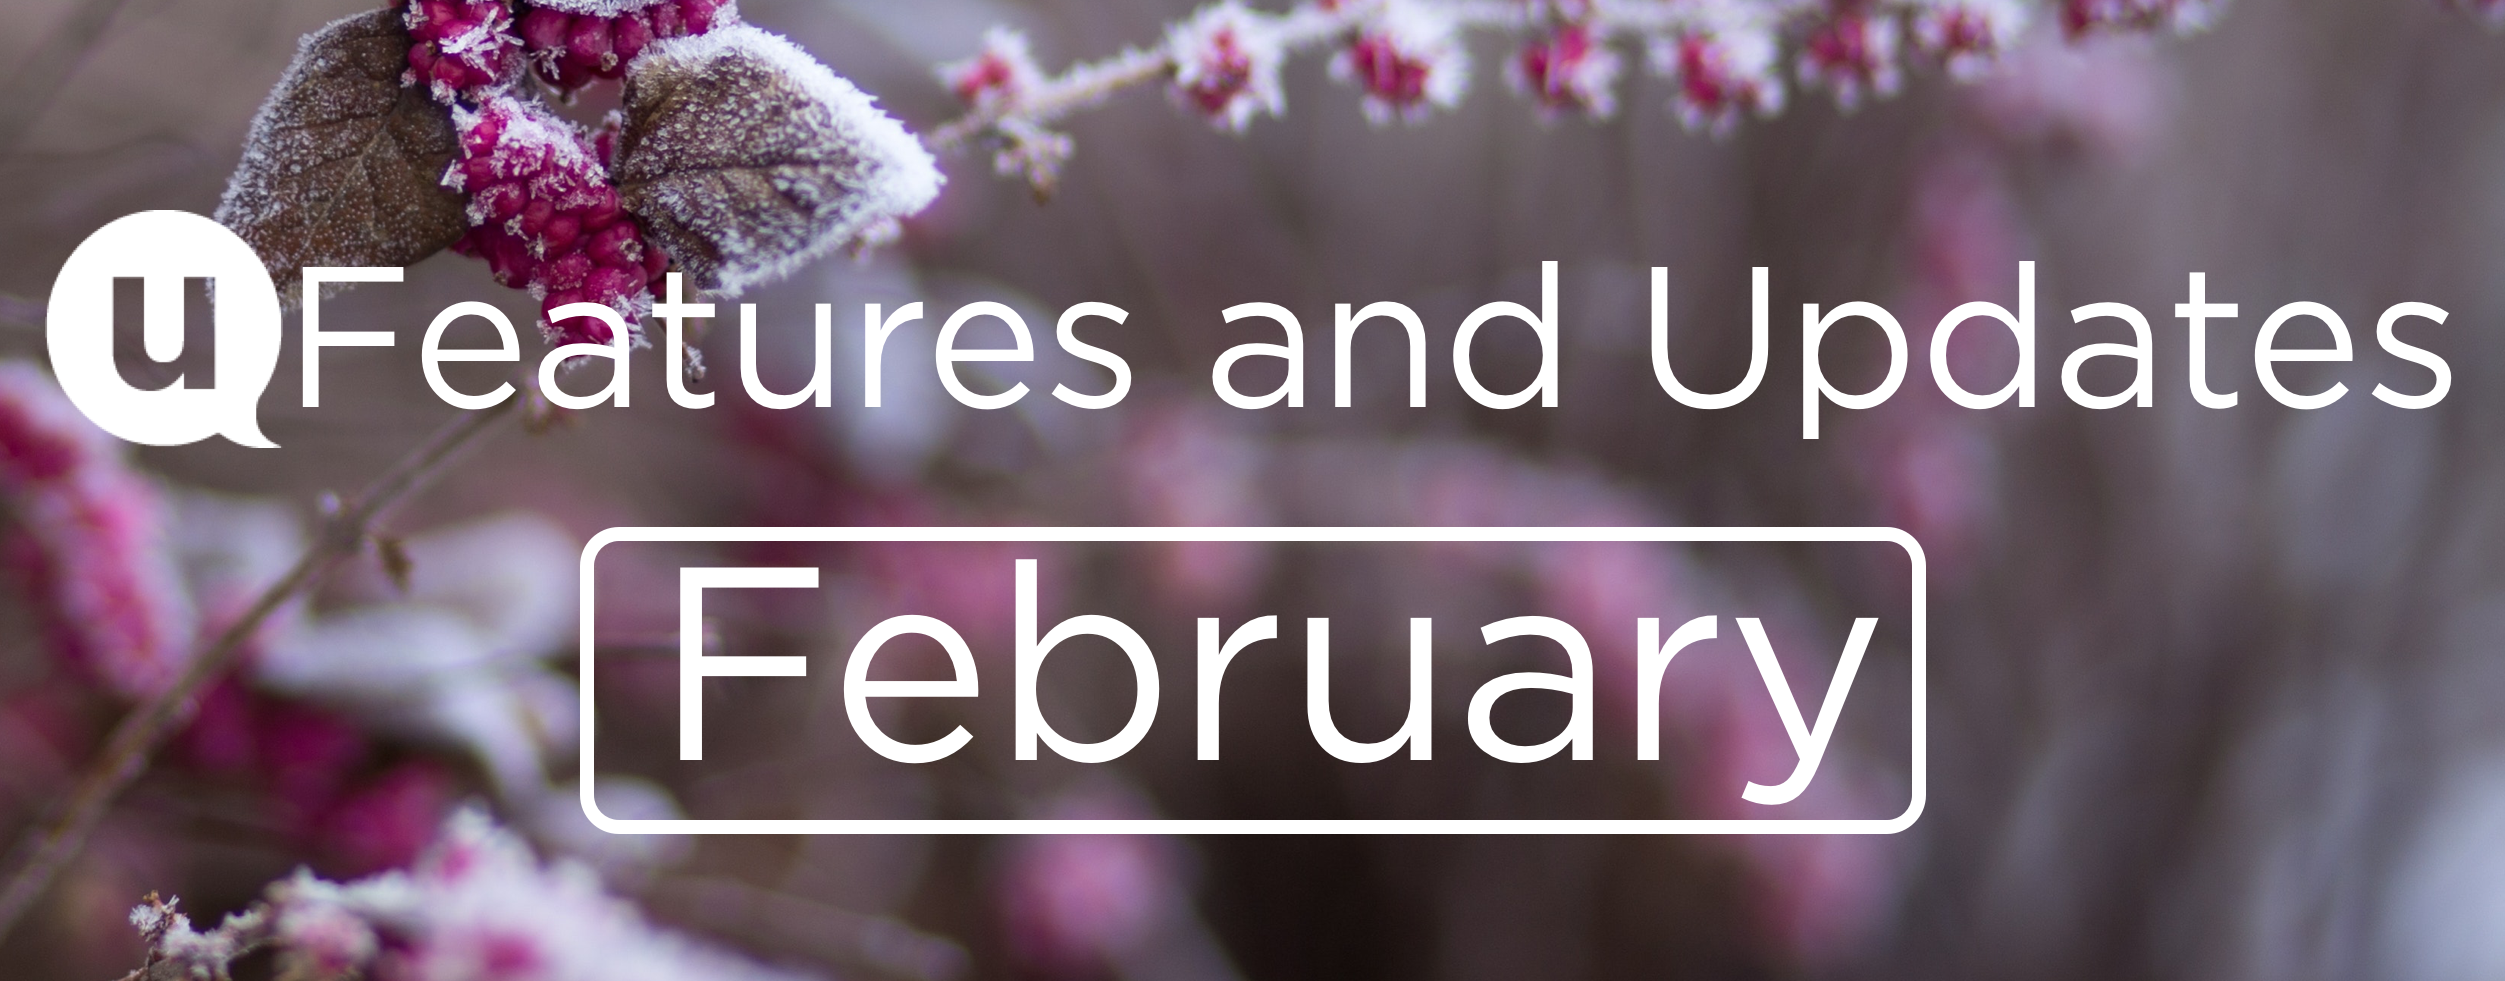 February 2019 Features and Updates